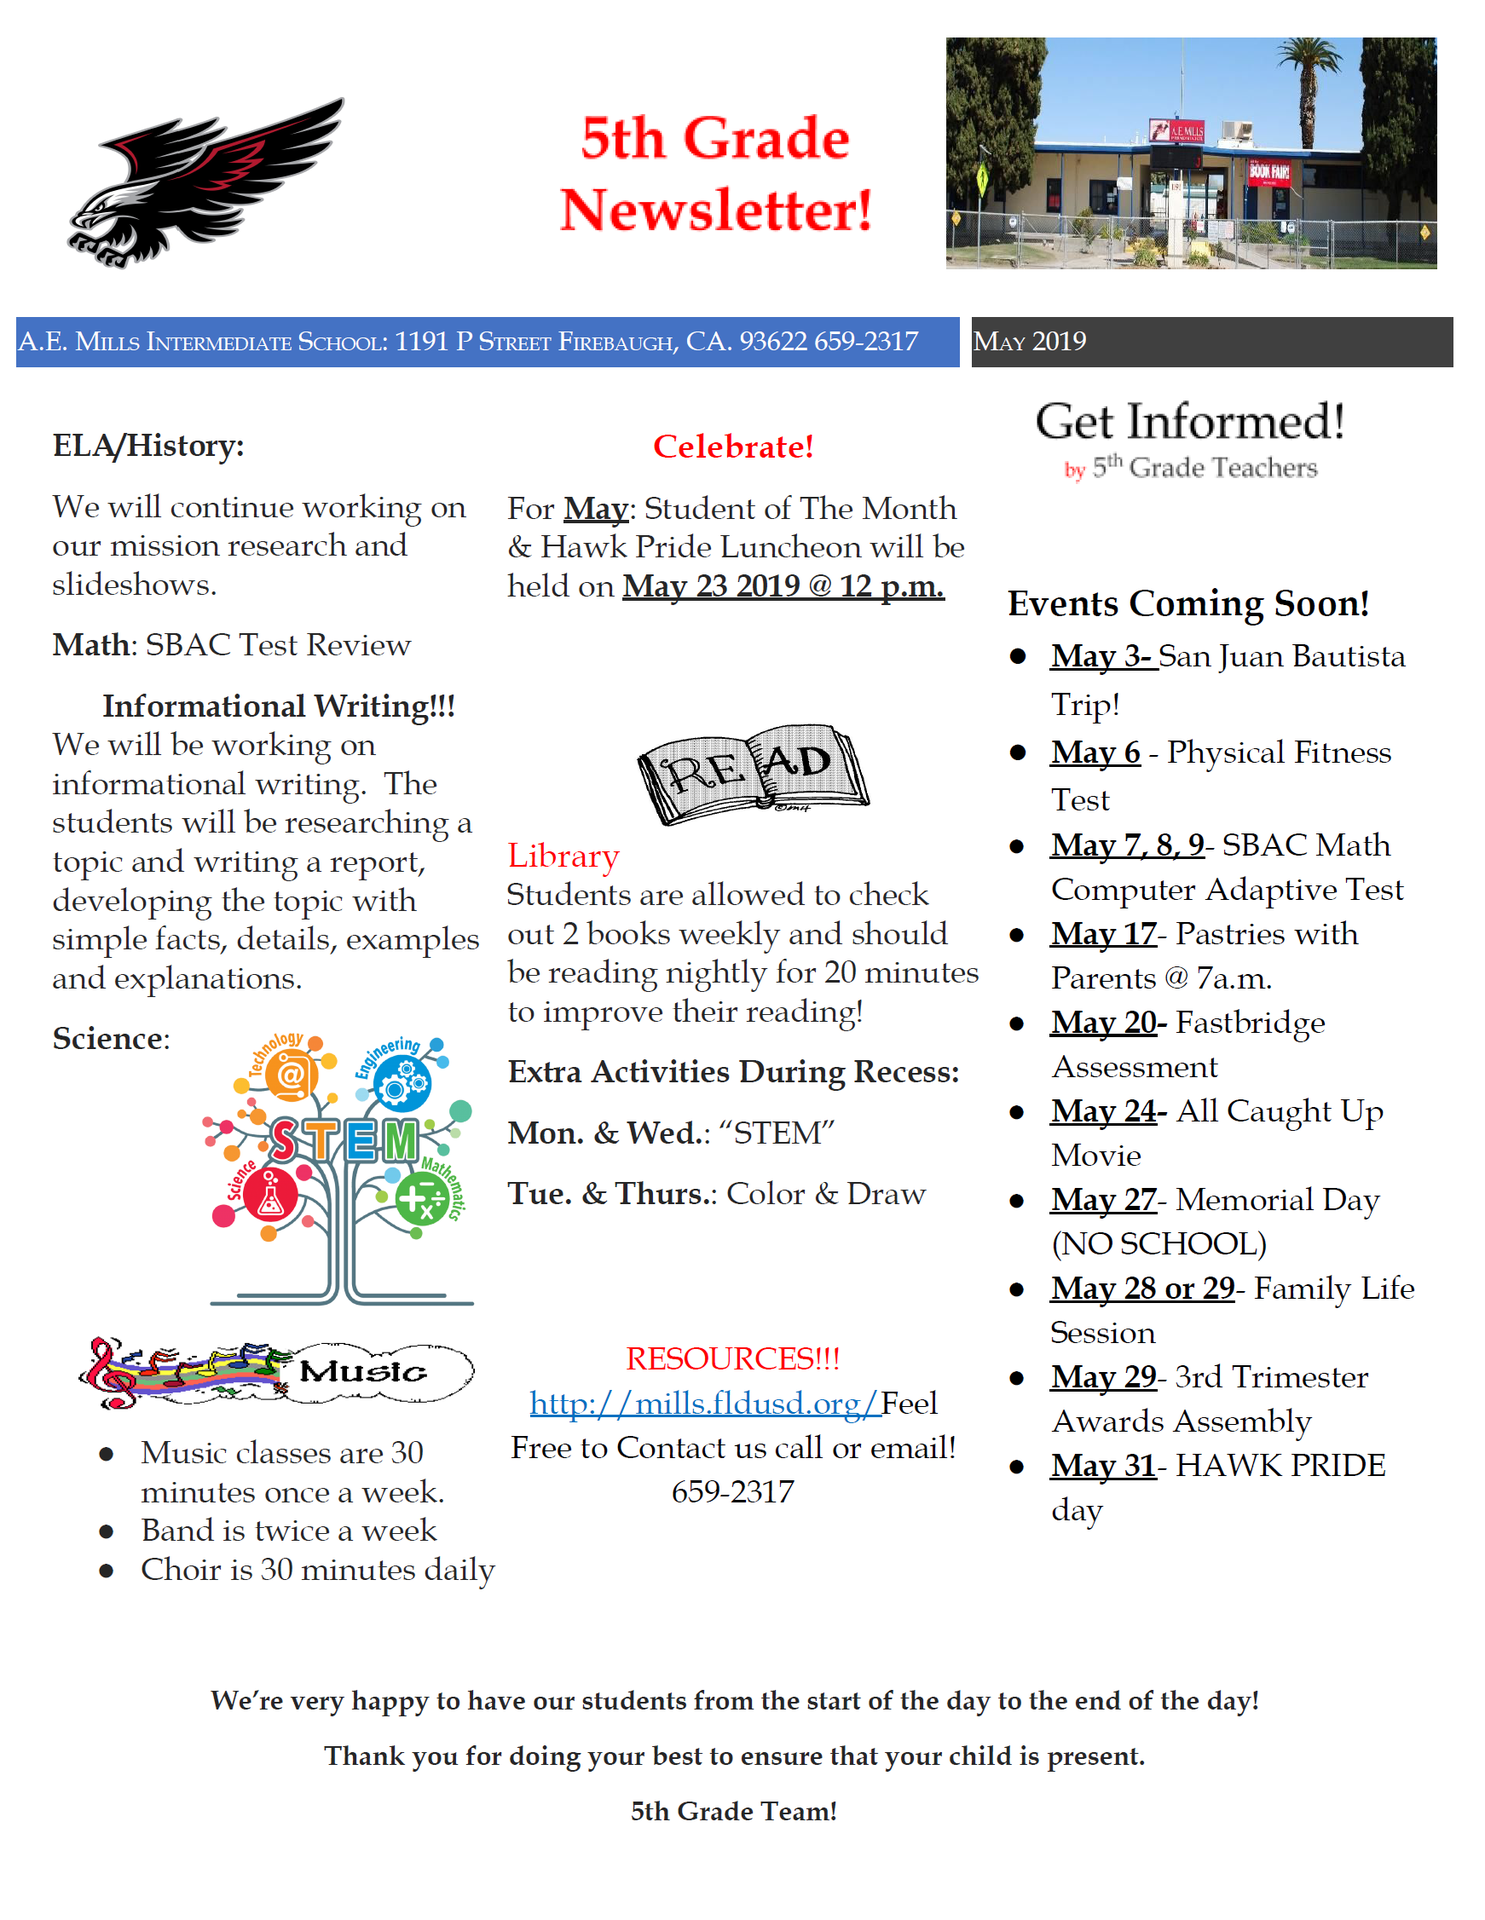 May 5th grade newsletter